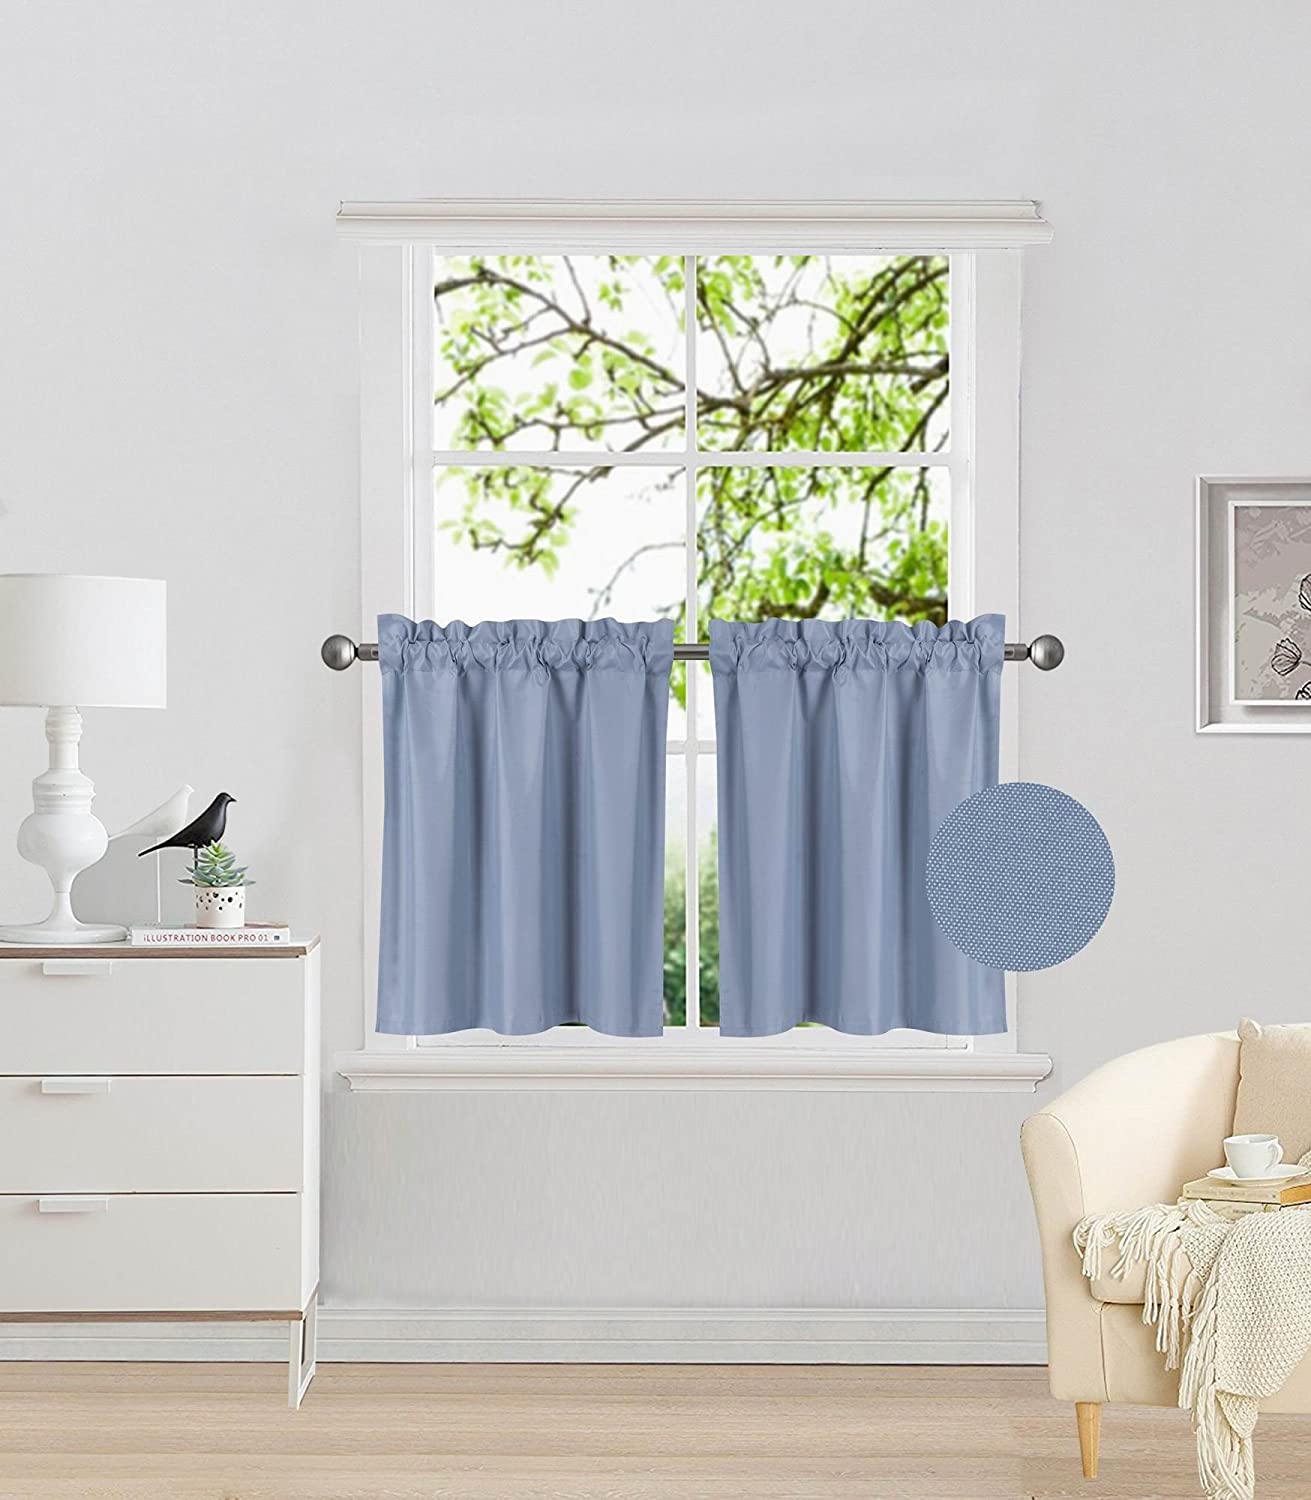 Elegant Home 2 Panels Tiers Small Window Treatment Curtain Insulated Blackout Drape Short Panel 28